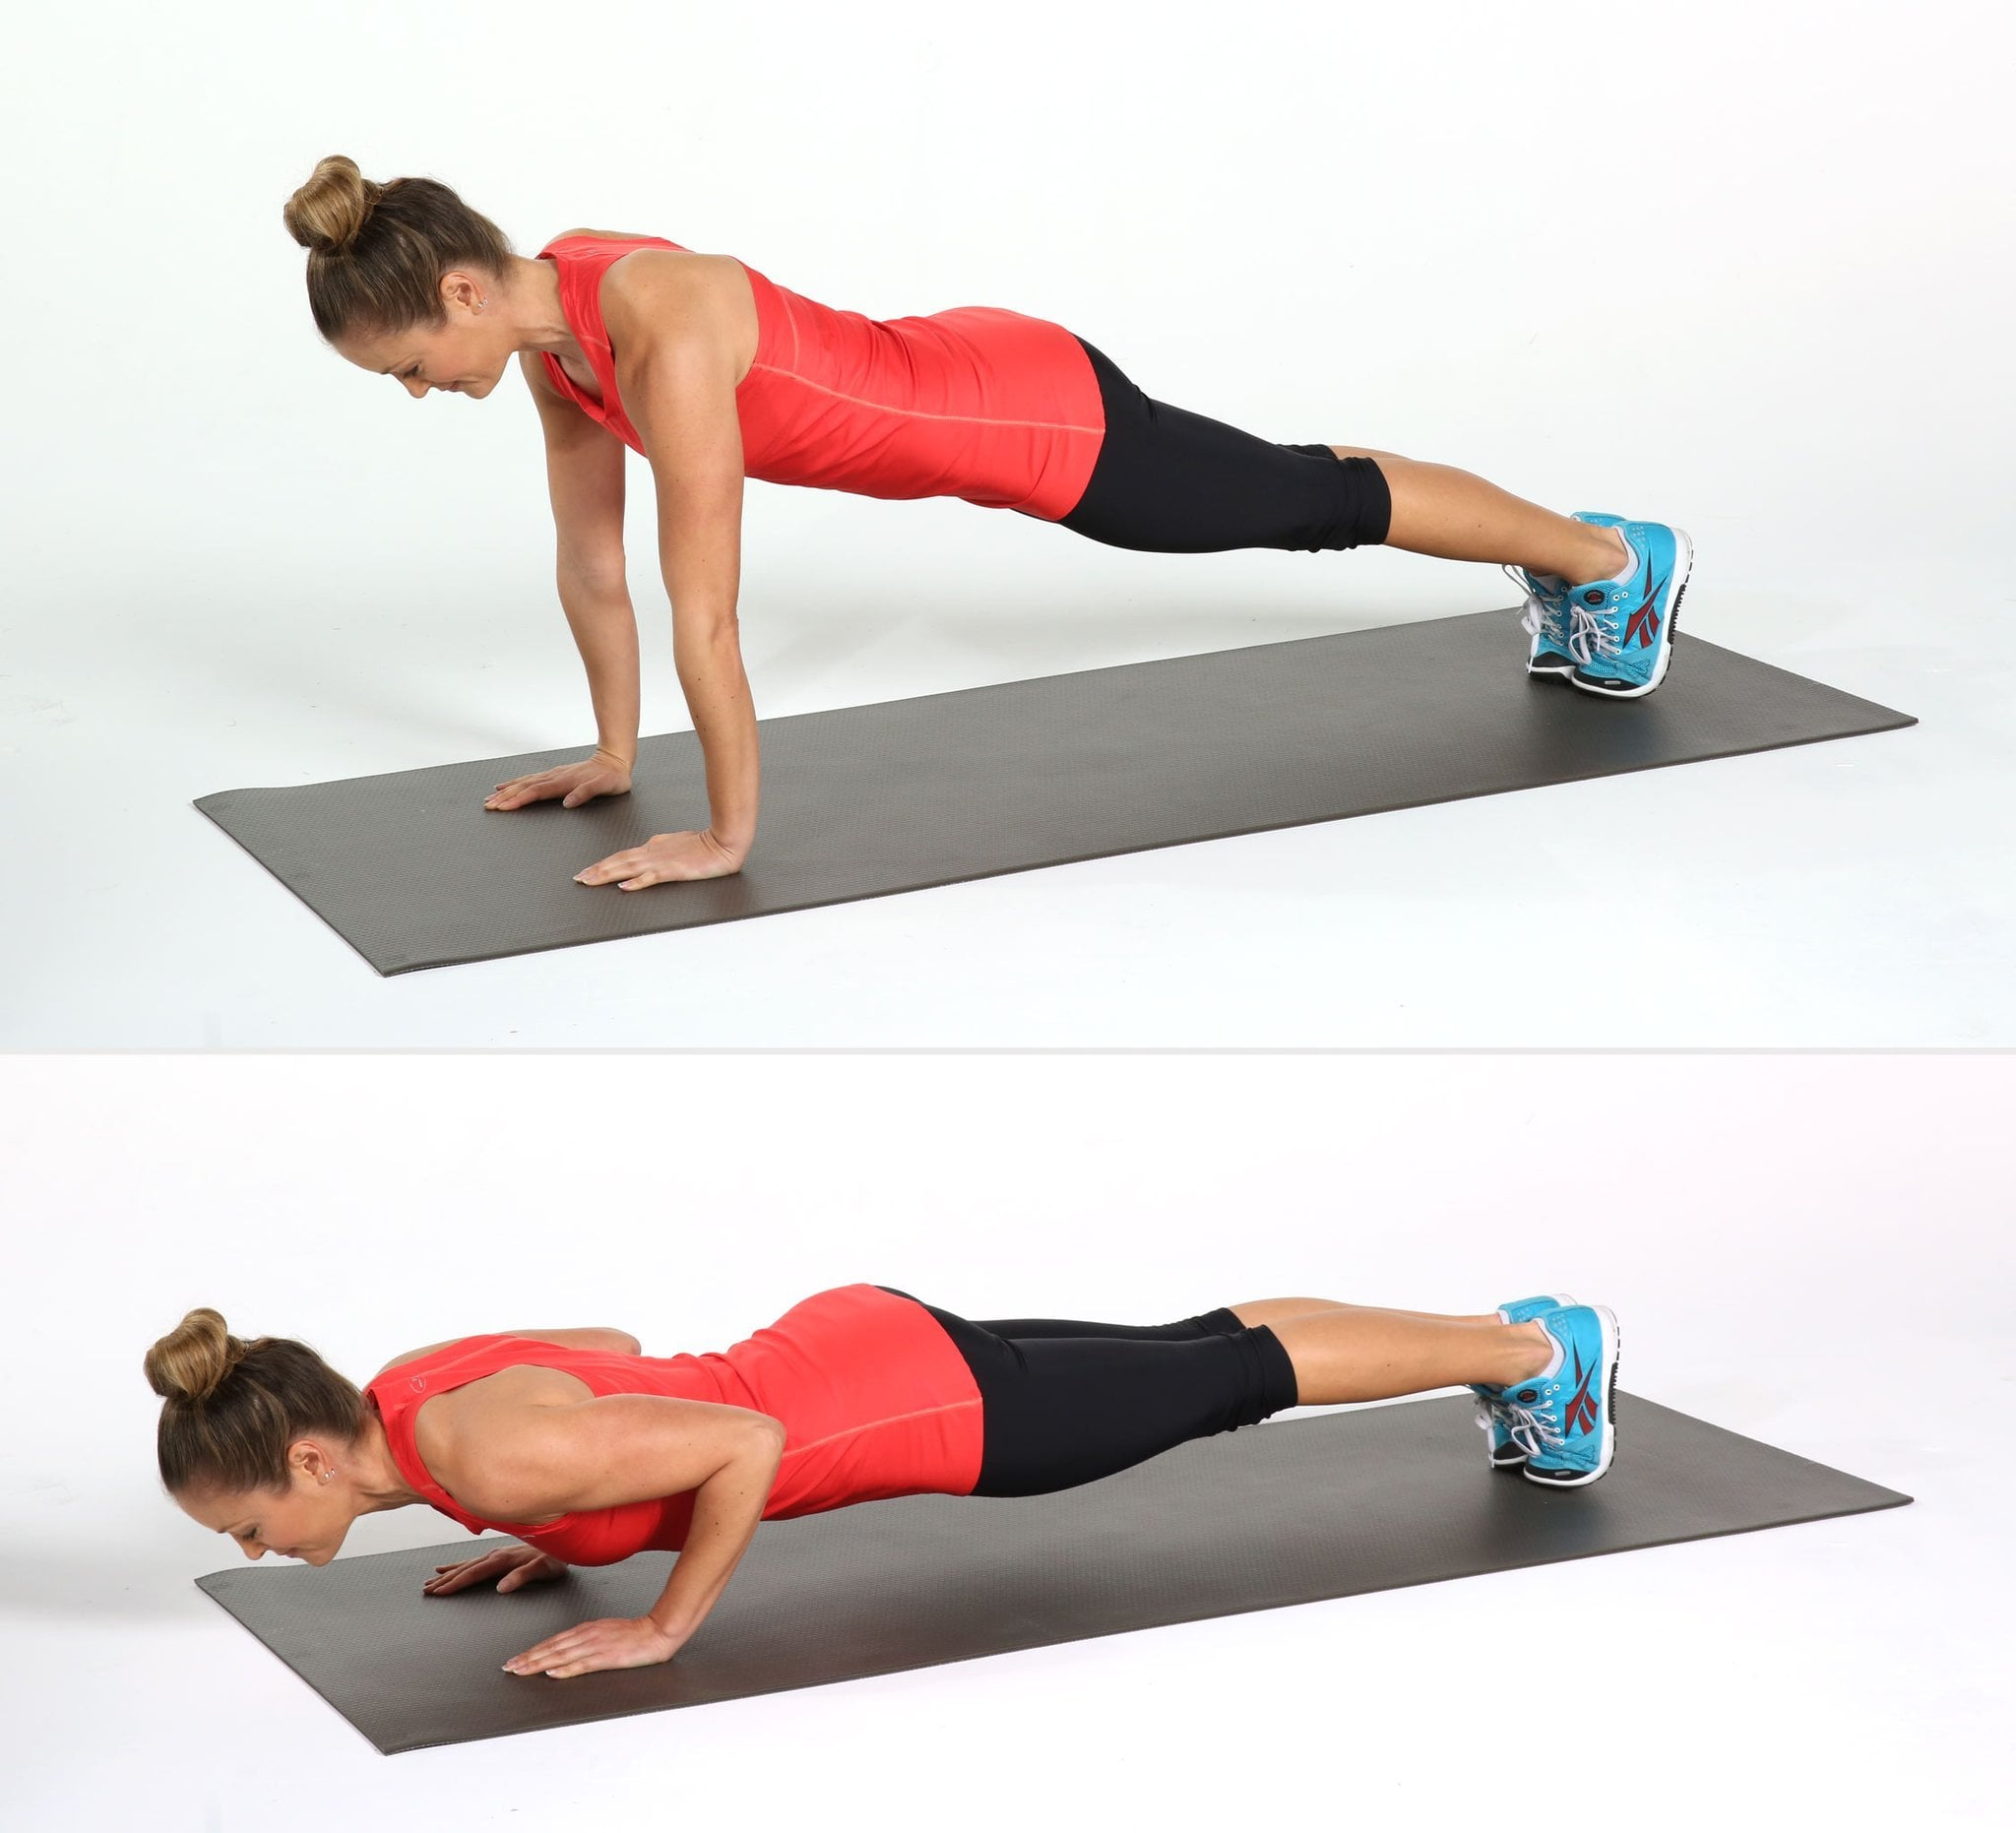 Image result for Full push up: